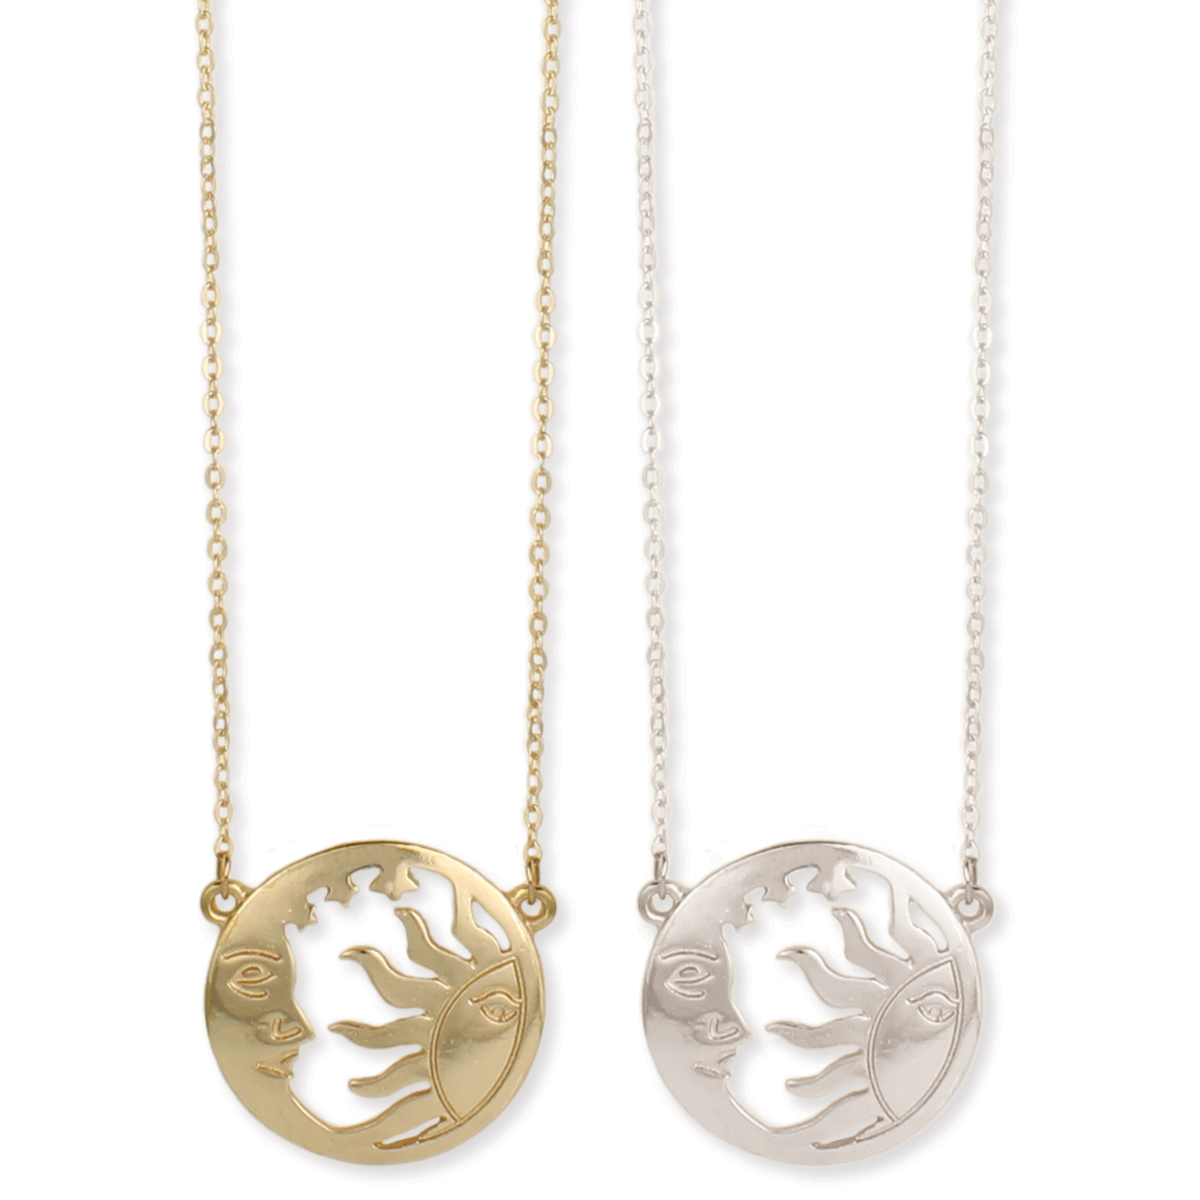 41bf3adf8f Setting Sun, Rising Moon Cutout Pendant Necklace. View Detailed Images 2 ...